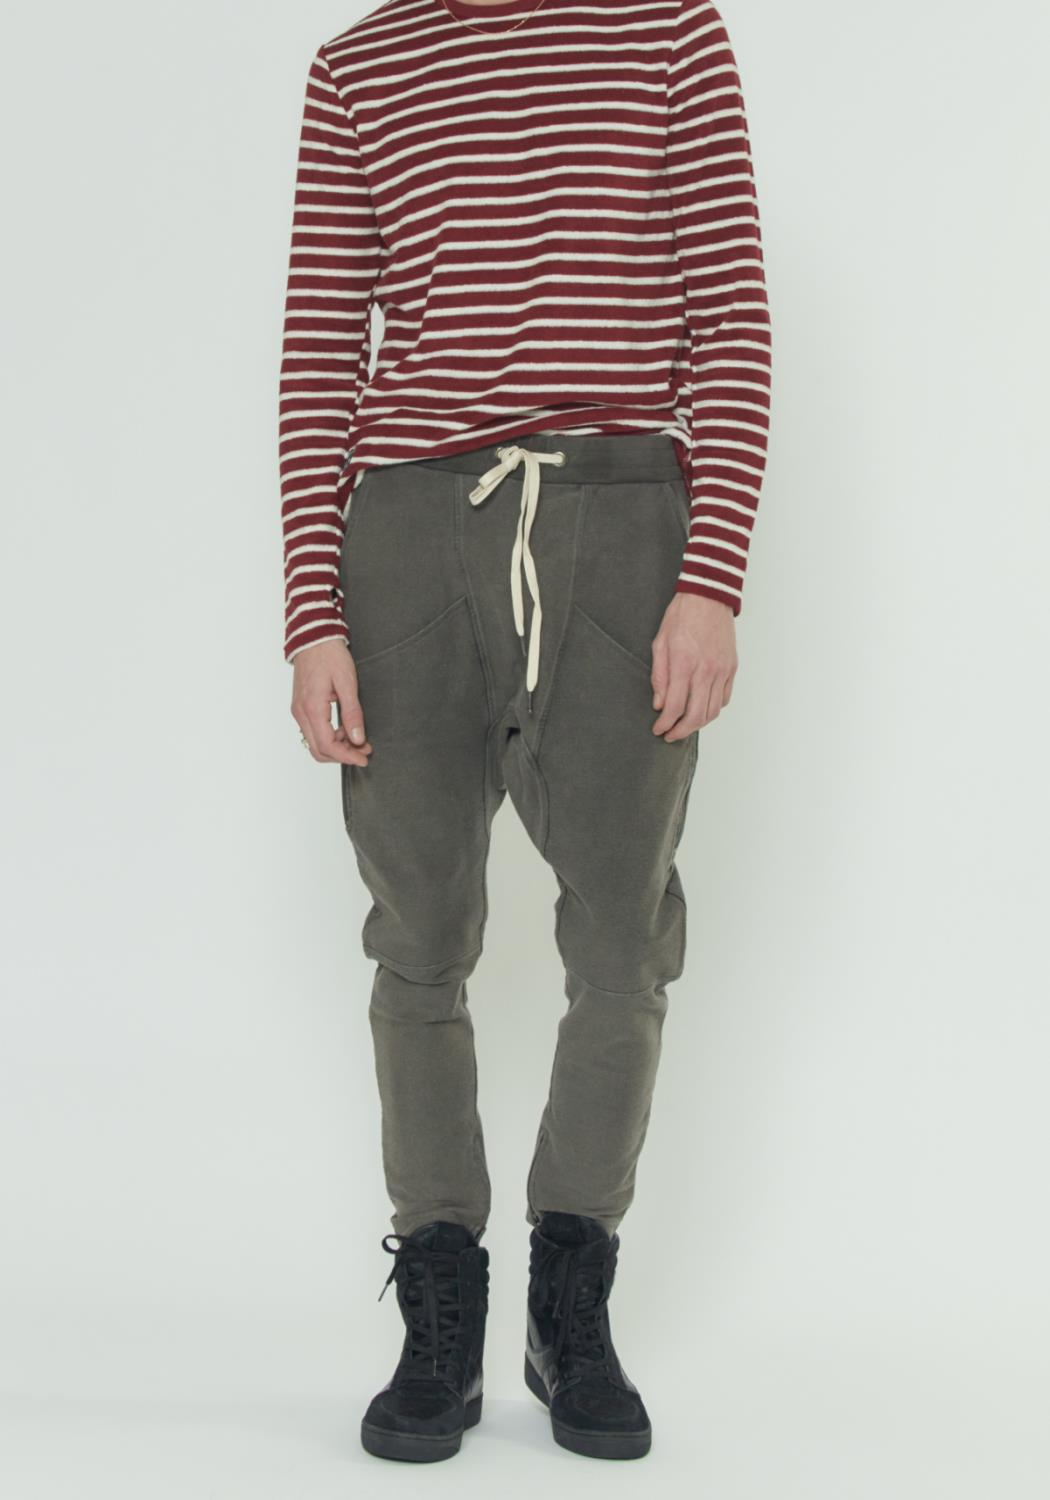 OVERDYED DROP CROTCH SWEATPANTS WITH MULTIPLE POCKETS